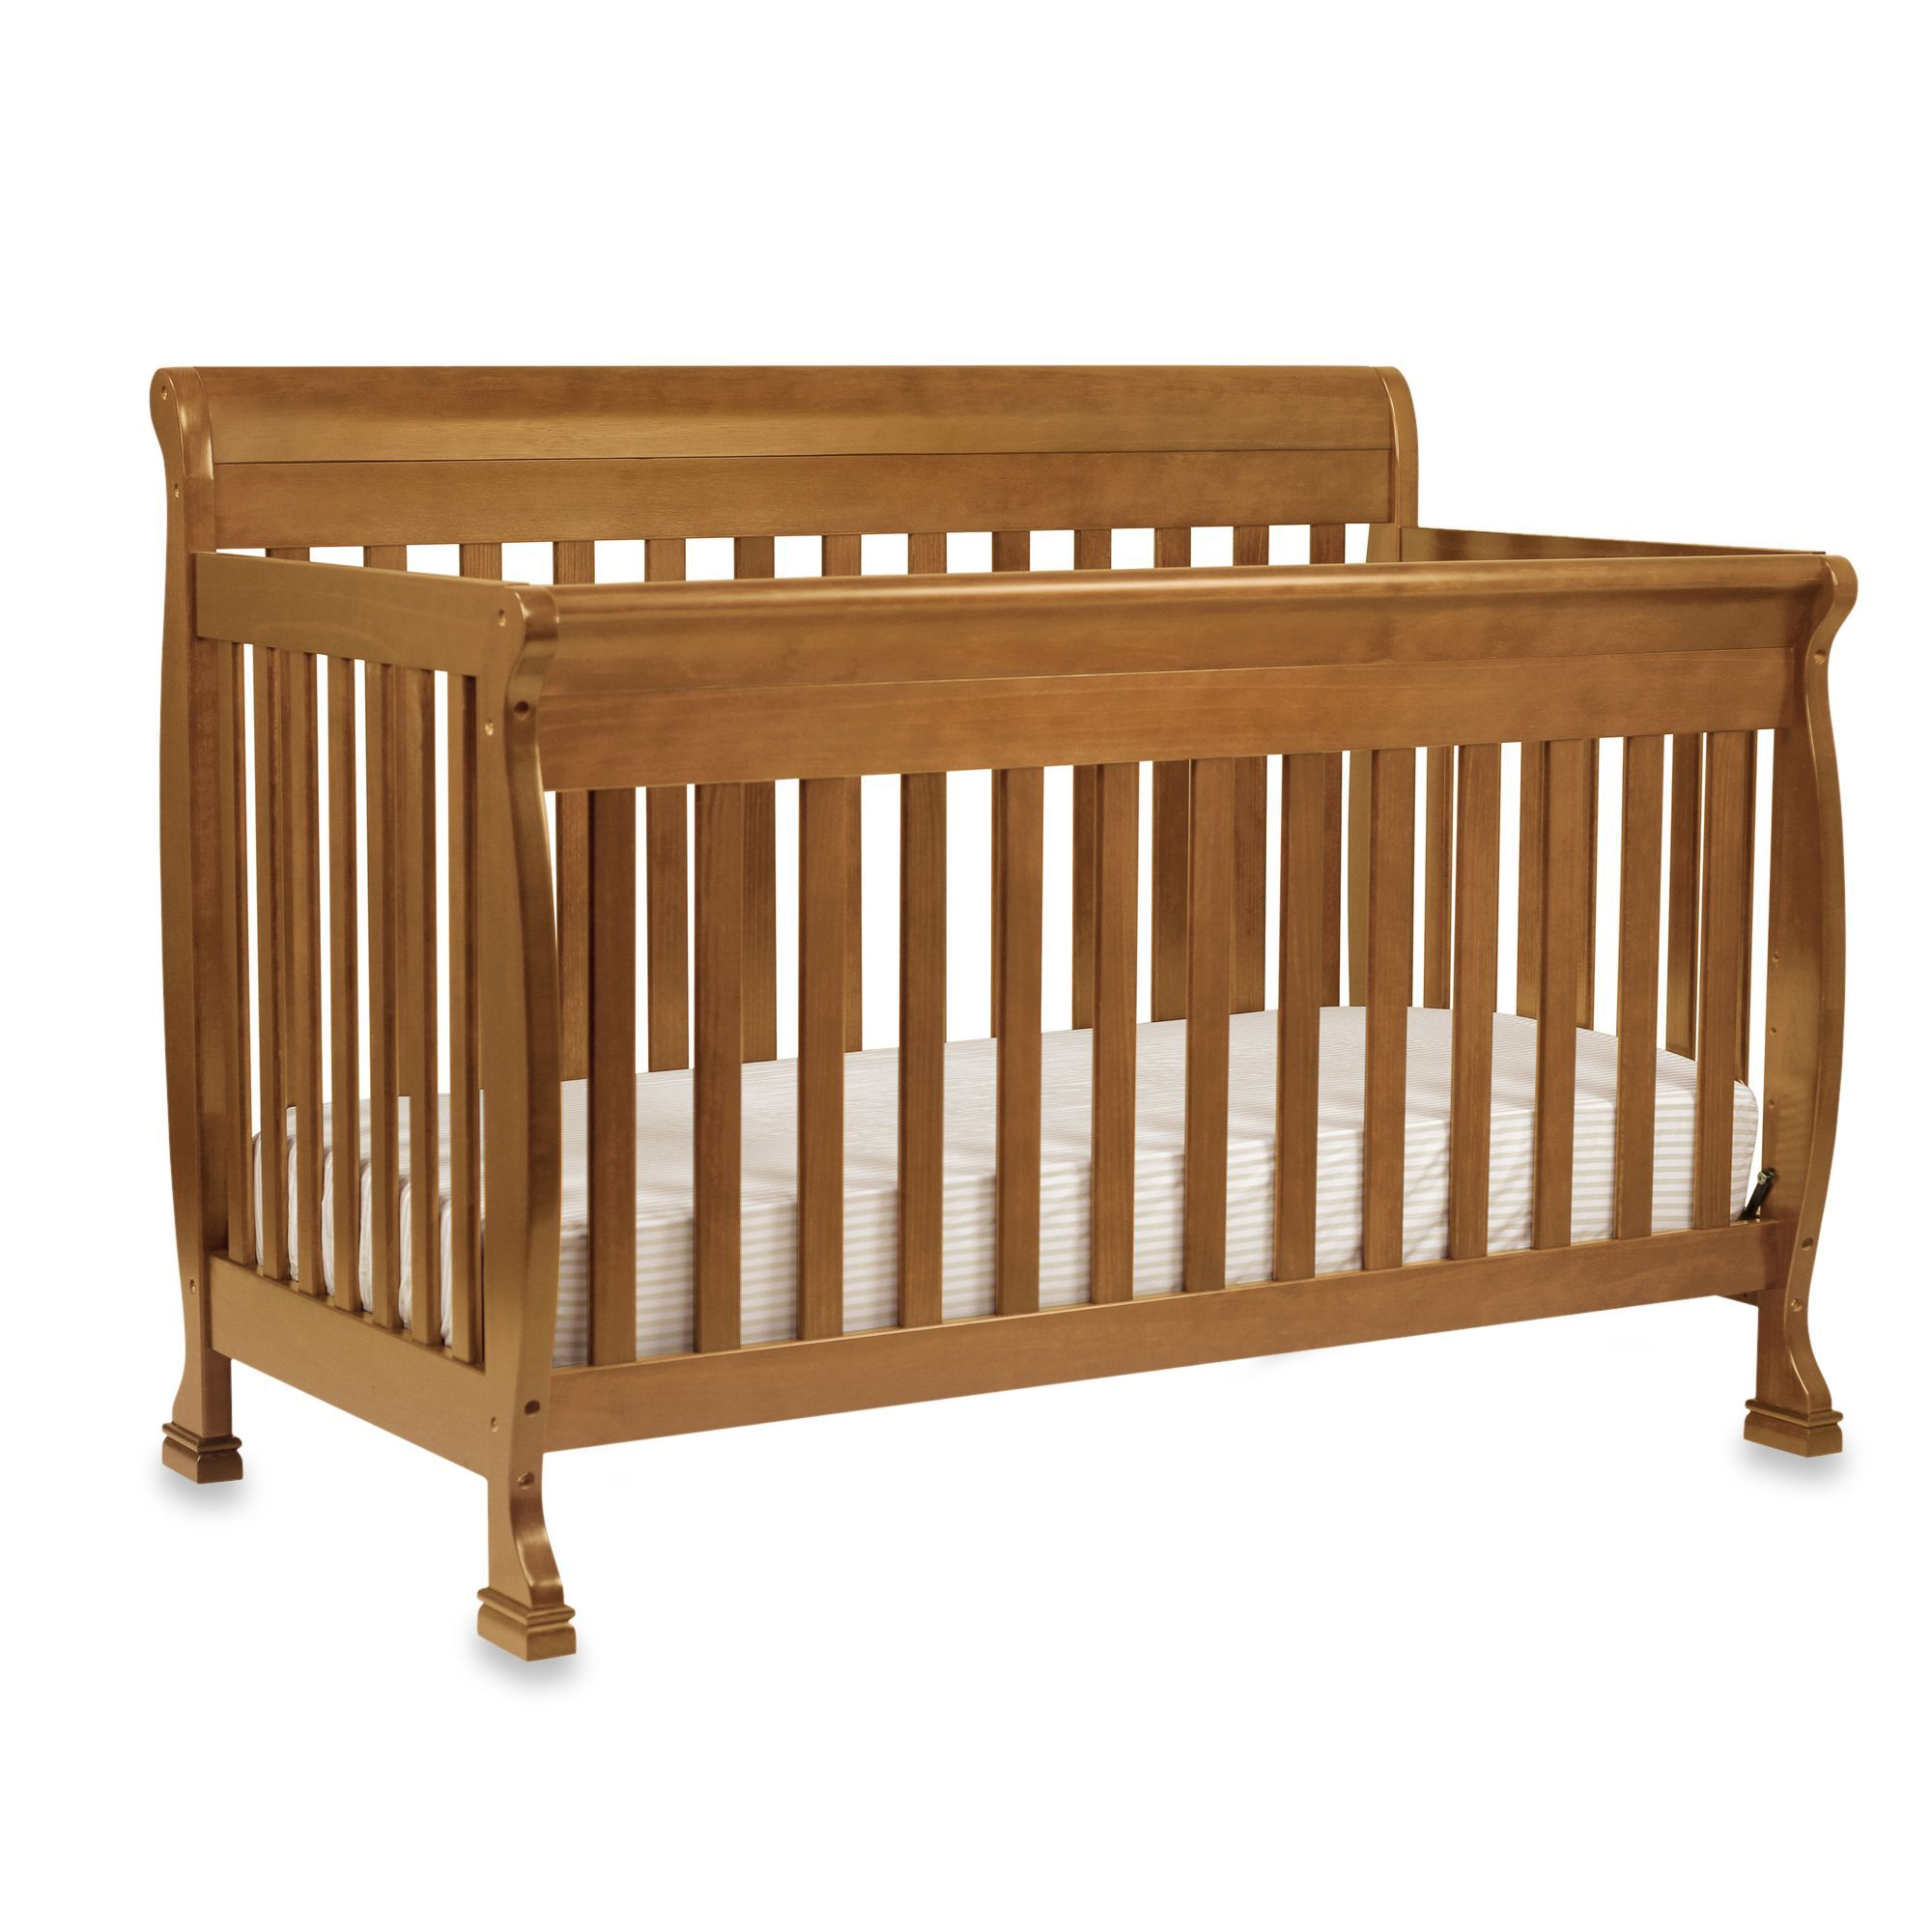 mattress twilight and cherry wood kalani instructions of rail delightful convertible toddler baby furniture davinci with crib white cribs photo simply in